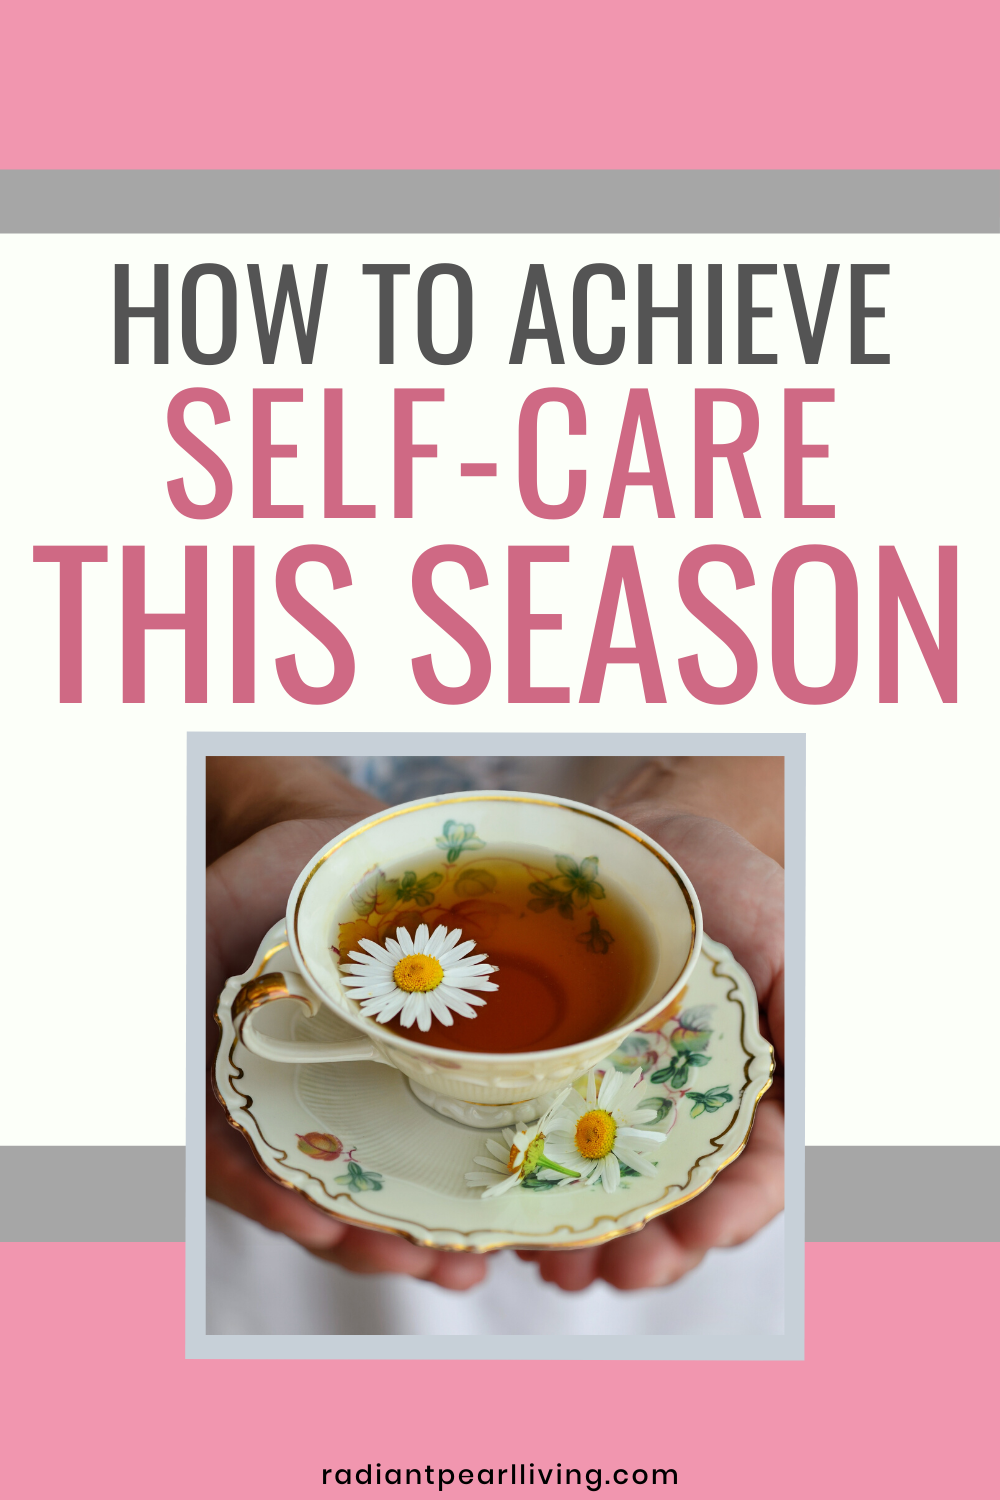 Looking for tips to experience amazing self care this season and to have the most memorable time with your loved ones home? We have a lot of fun things planned for us to do while we are together! Including tips to take care of yourself while doing all the fun amazing things with family. Download the checklist to remind yourself of self-care with your family and enjoy all the must do essentials while you enjoy some quality time together. Pin to Save!